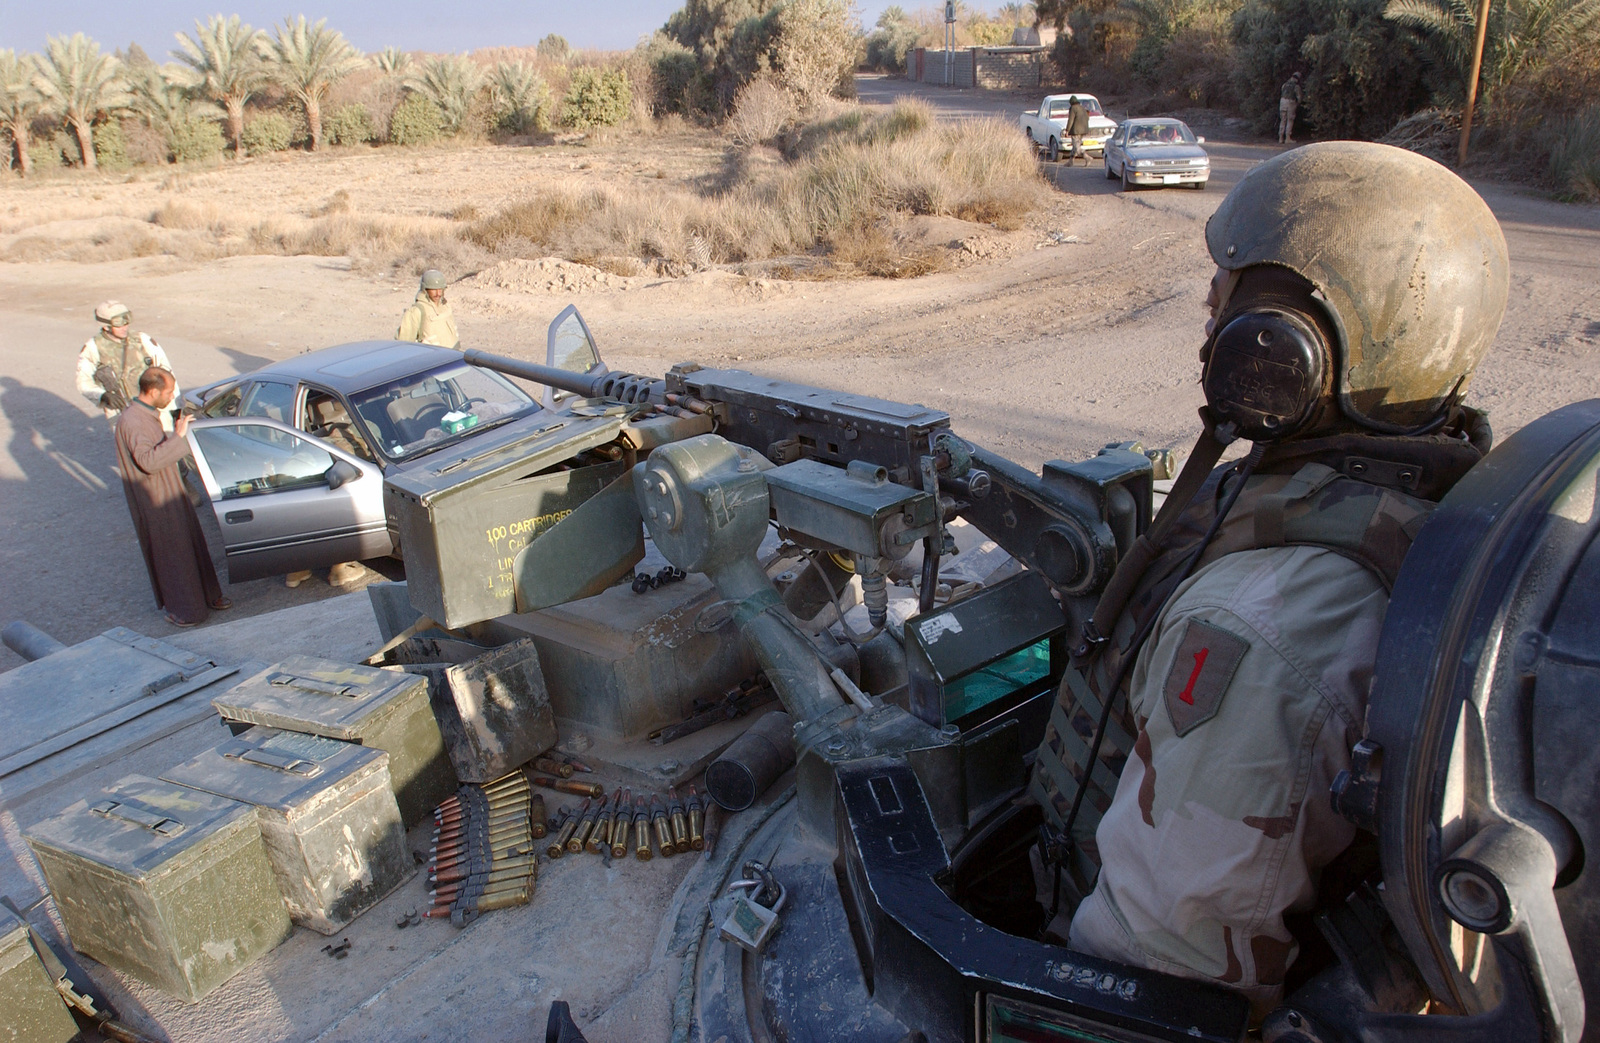 U.S. Army (USA) SPC. Adam R. Wilson (right) of Anvil Troop, 1ST Squadron, 4th Cavalry Regiment, 1ST Infantry Division, mans his .50 caliber machine gun on the turret of an M1 Abrams Main Battle Tank (MBT) while USA Soldiers check the identification of an Iraqi driver at a traffic control check point at Ad Duluiyah, Iraq on Dec. 21, 2004. (USAF PHOTO by TECH. SGT. Lee Harshman) (Released)